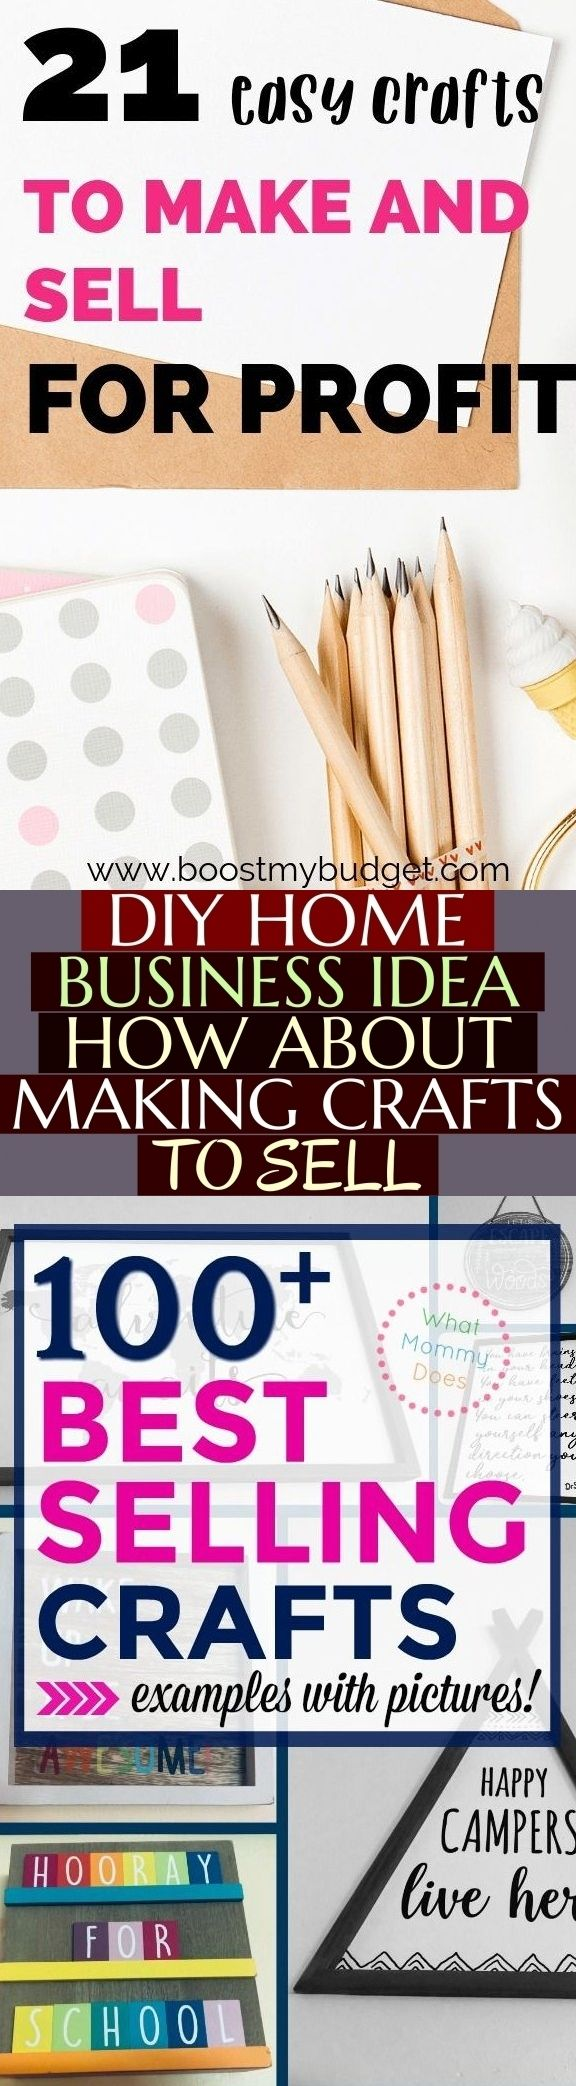 Diy Home Business Idea How About Making Crafts To Sell